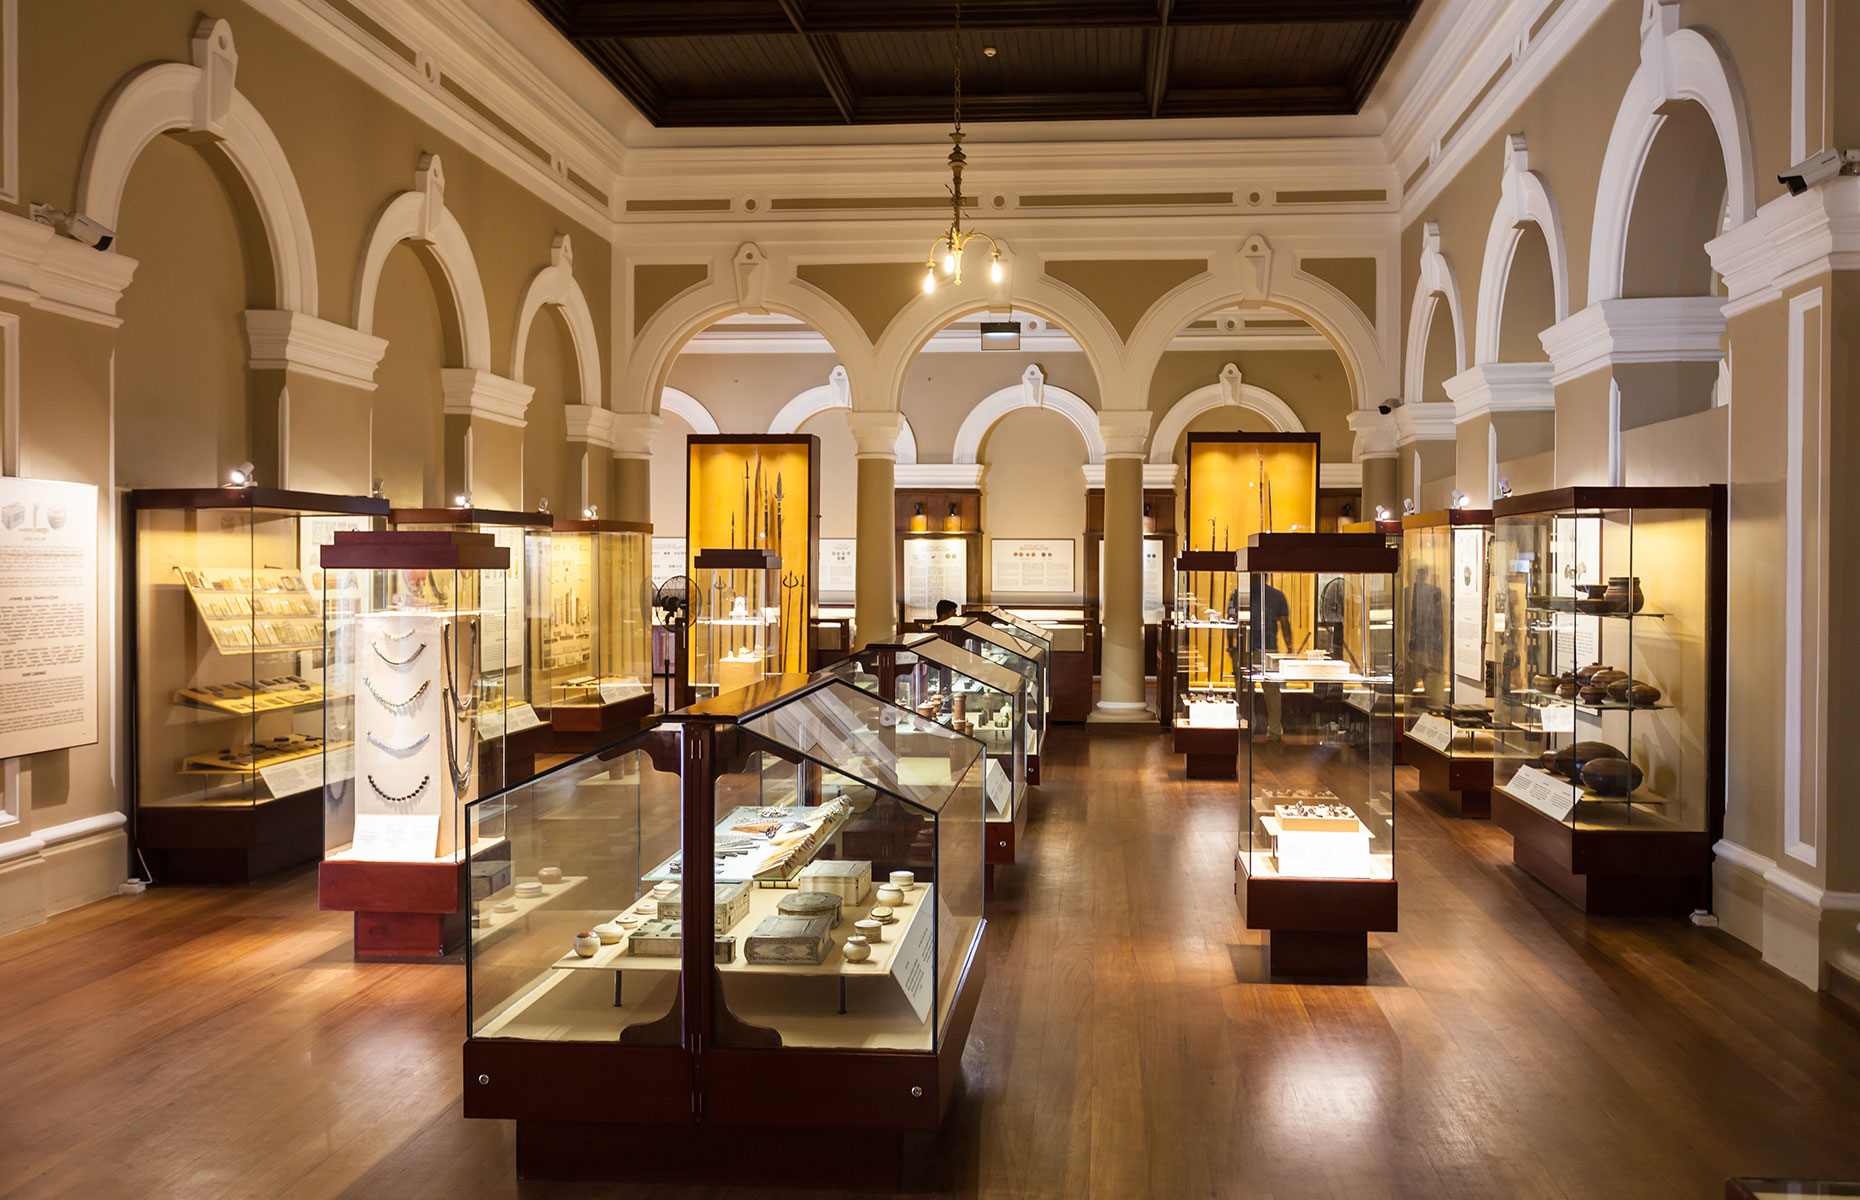 Internal exhibition at the National Museum Colombo